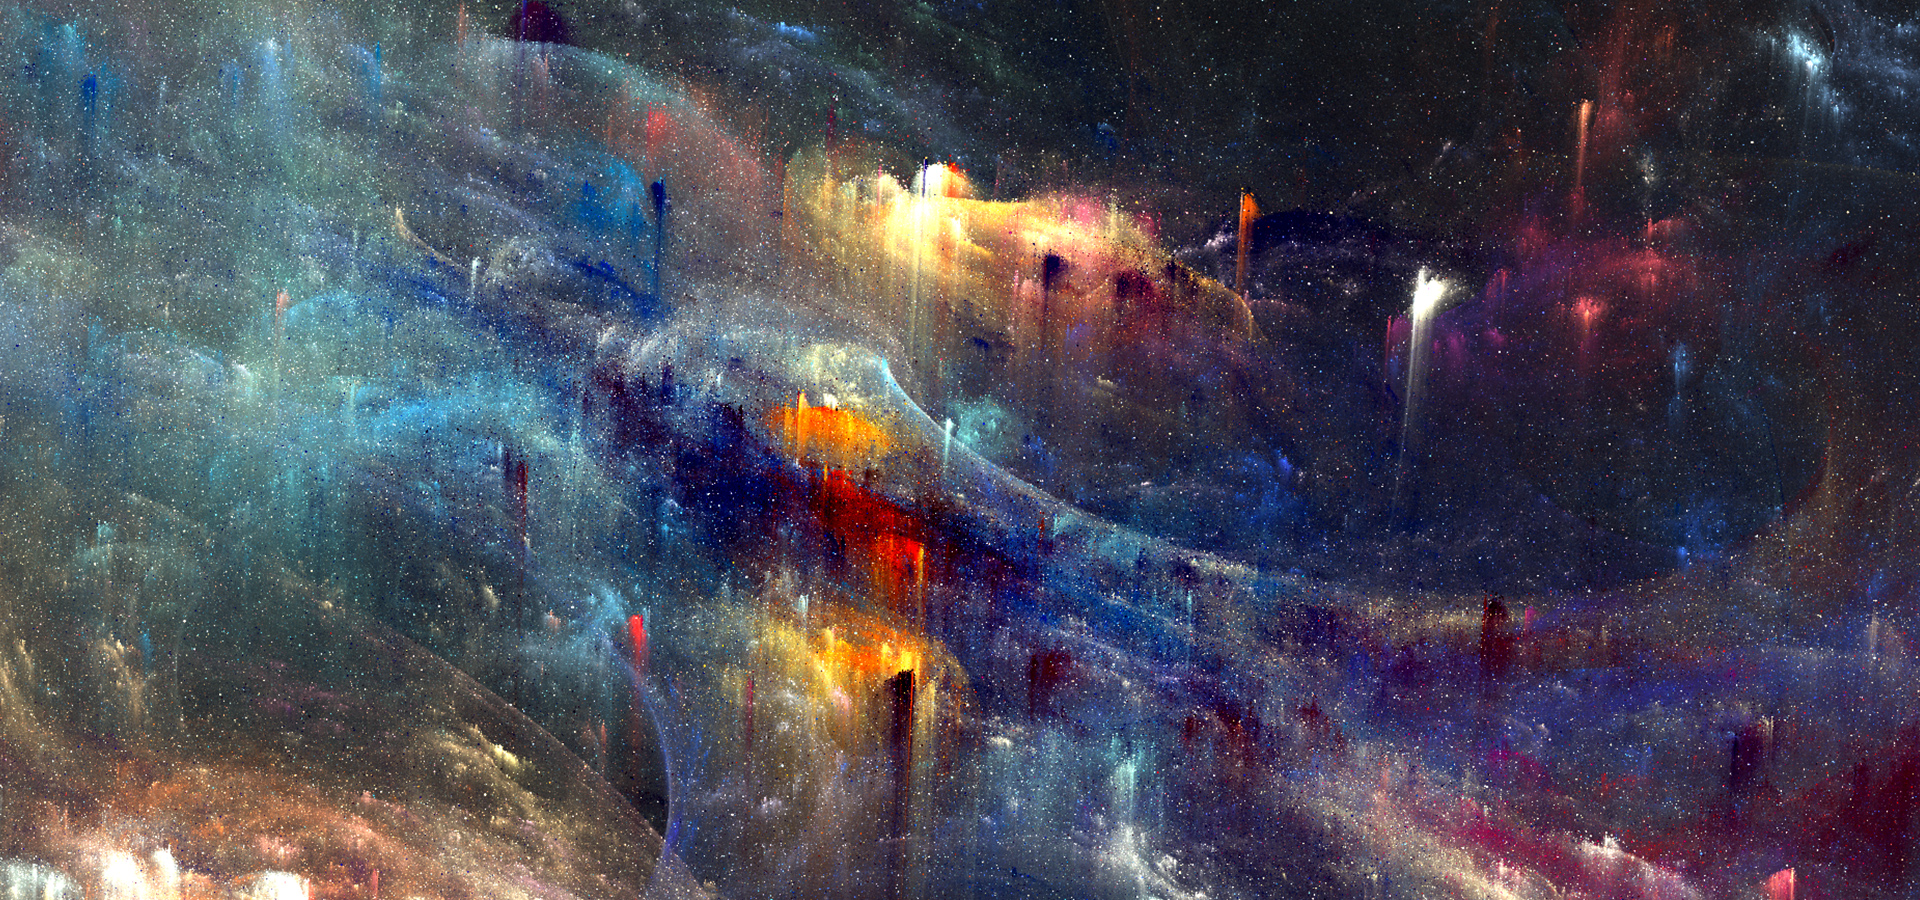 watercolor dream oil painting background  watercolor